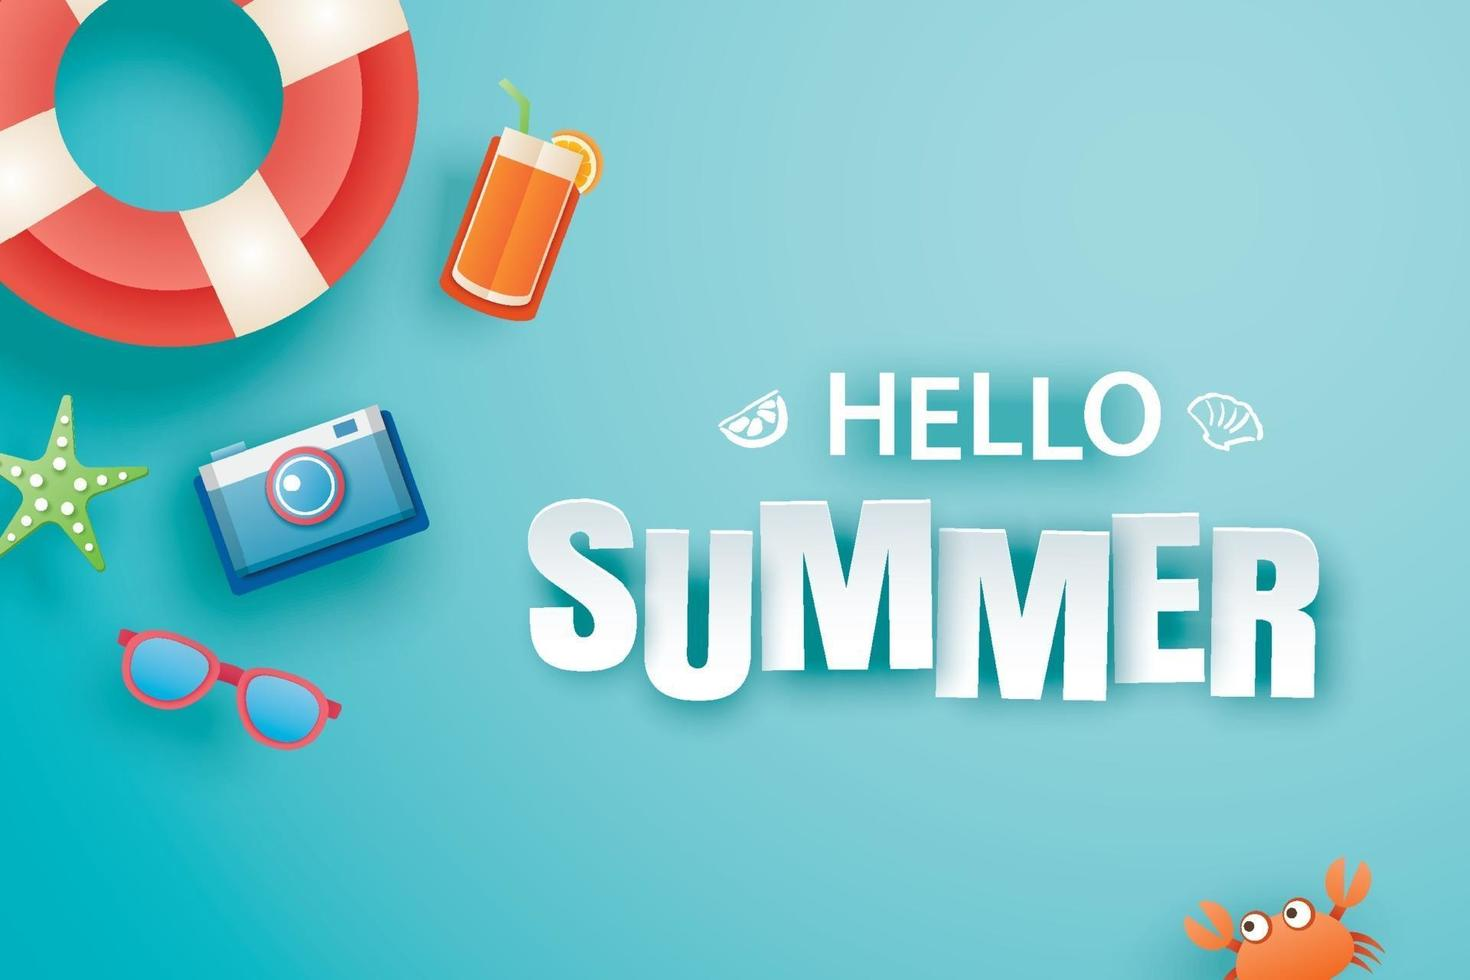 Hello summer with decoration origami on blue background vector